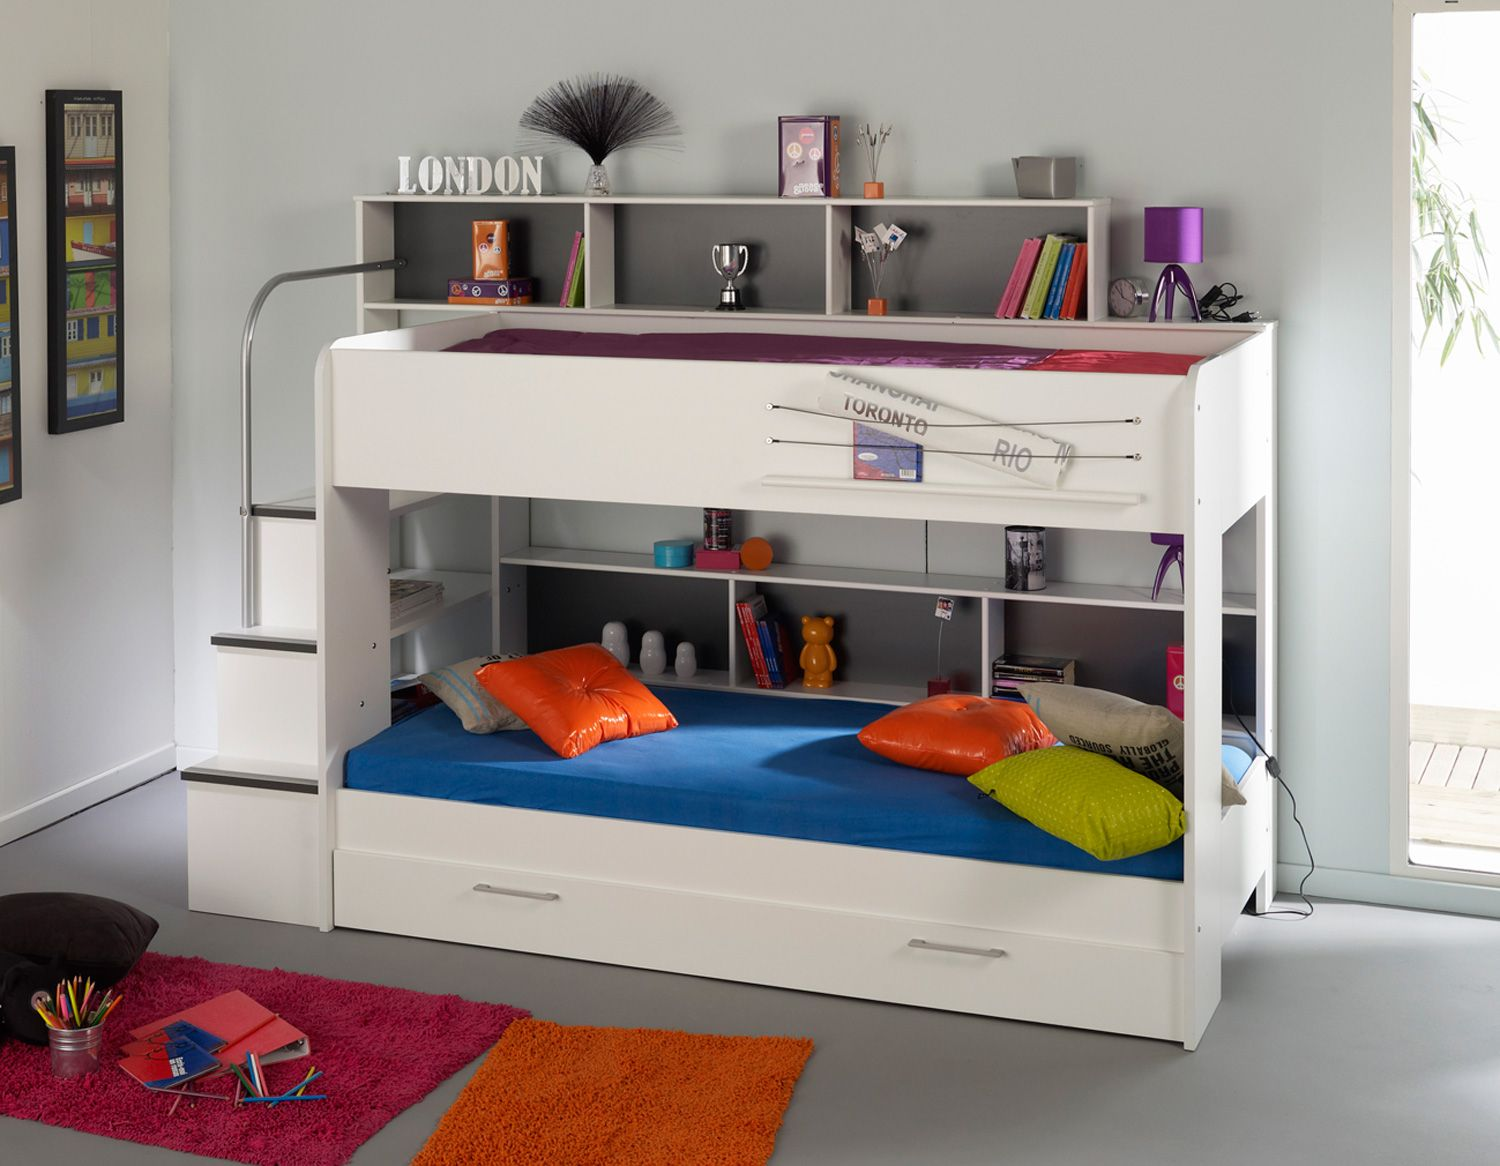 Bunk Beds for Young Children